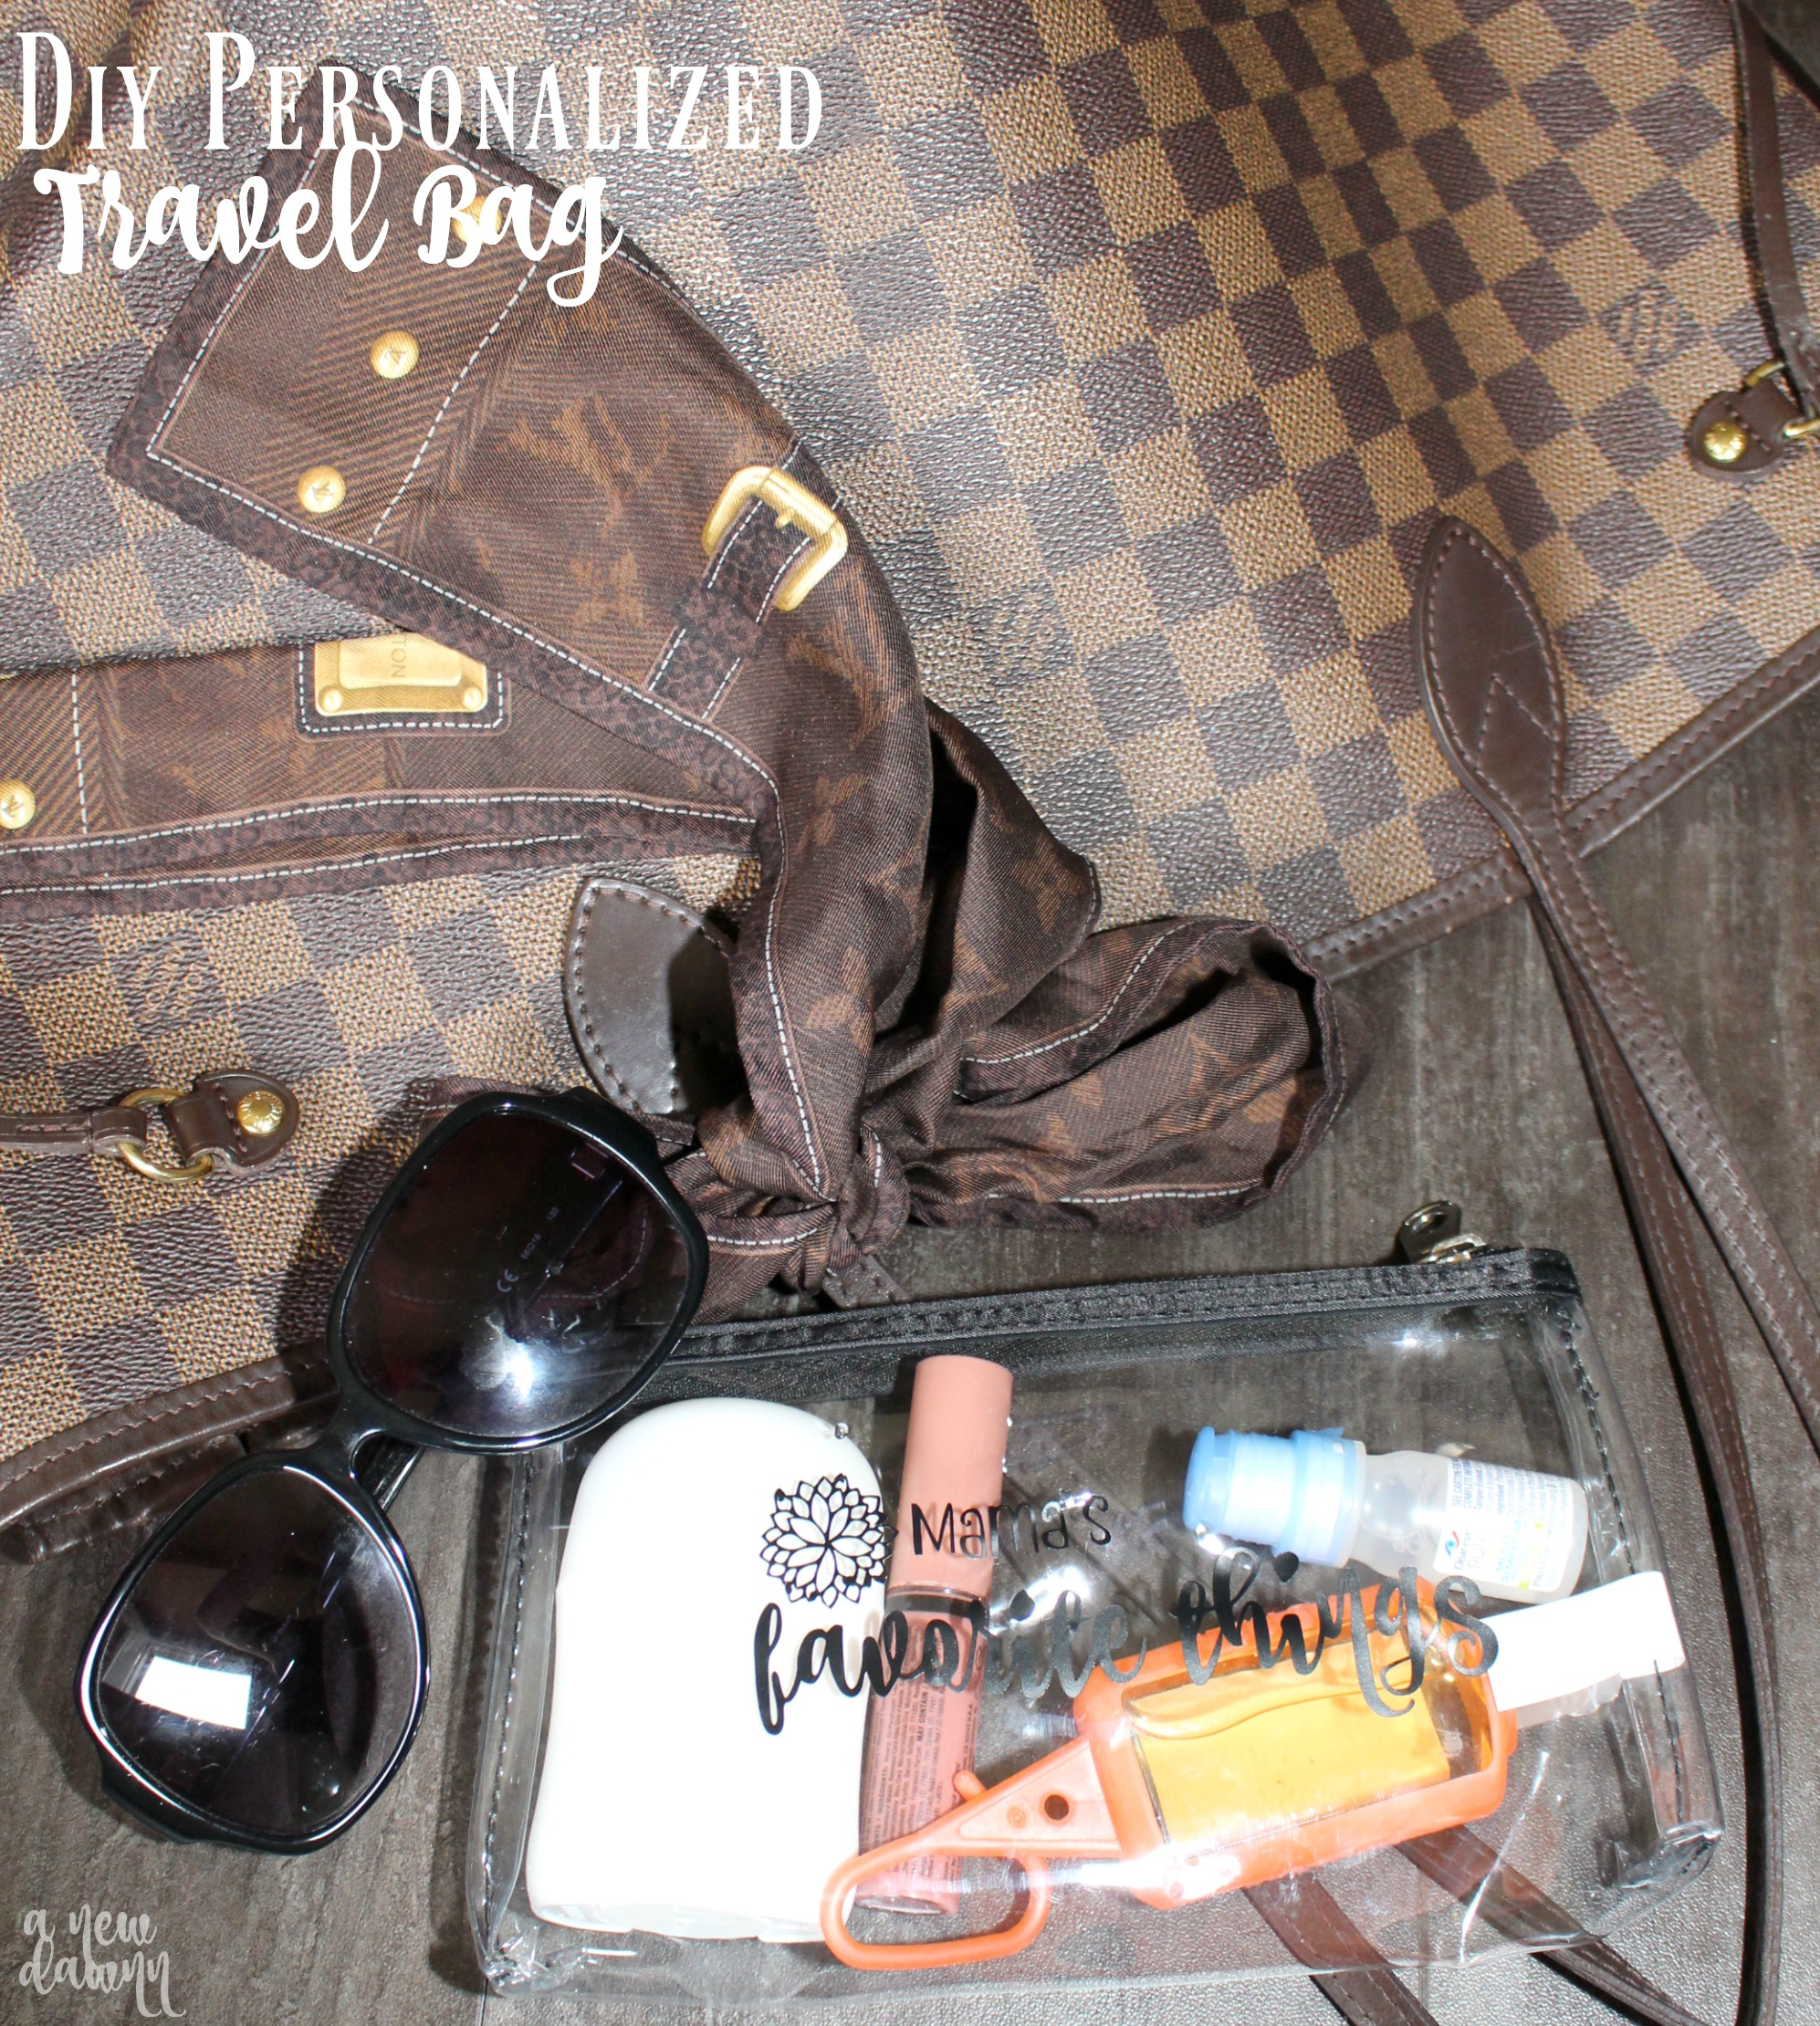 Personalized-Travel-Bag